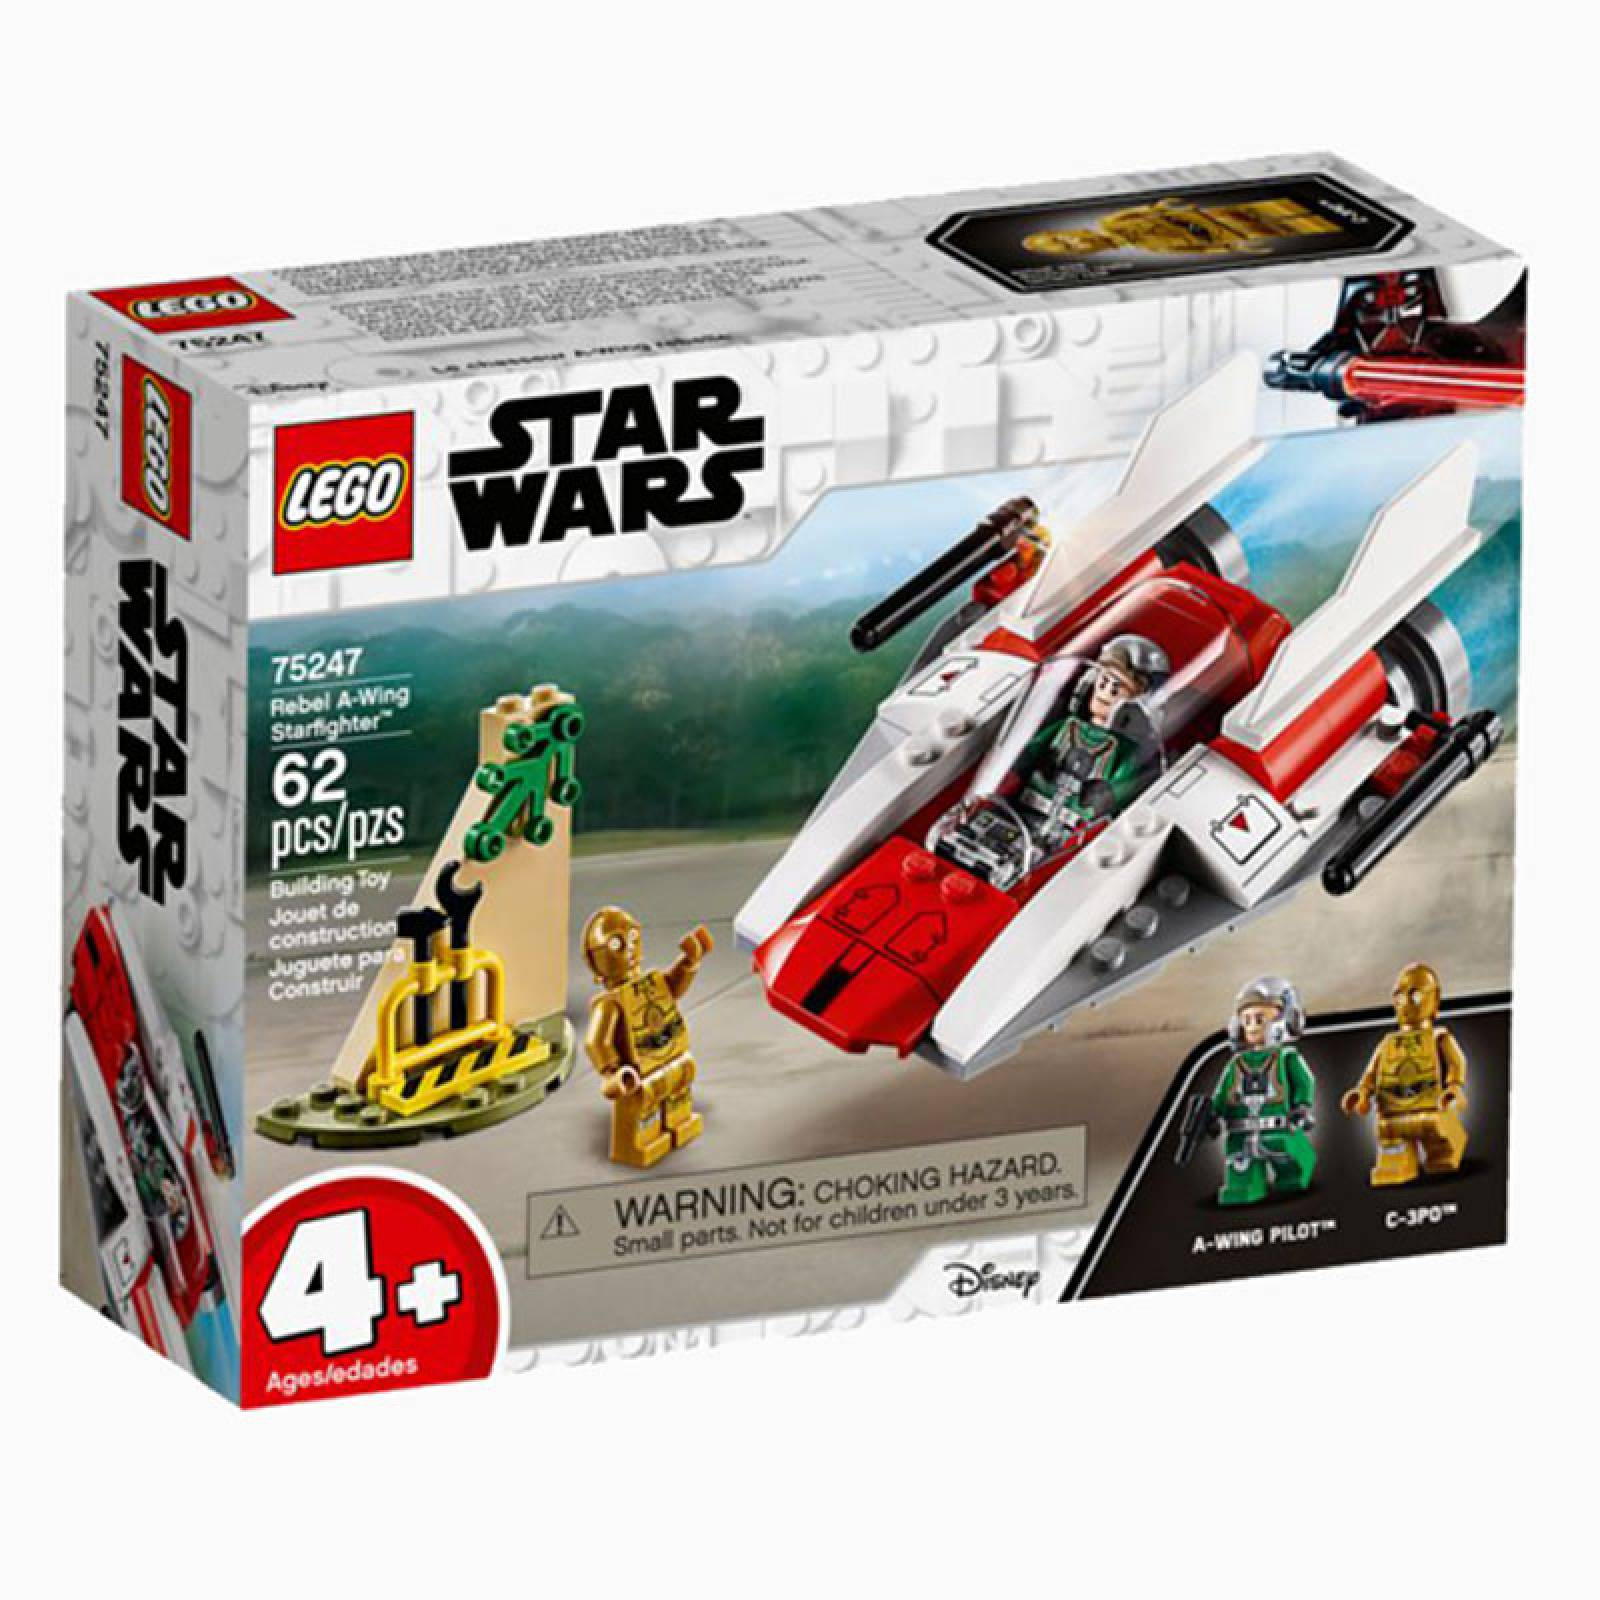 LEGO Star Wars Rebel A-Wing Starfighter 75247 - Retiring 2019 thumbnails